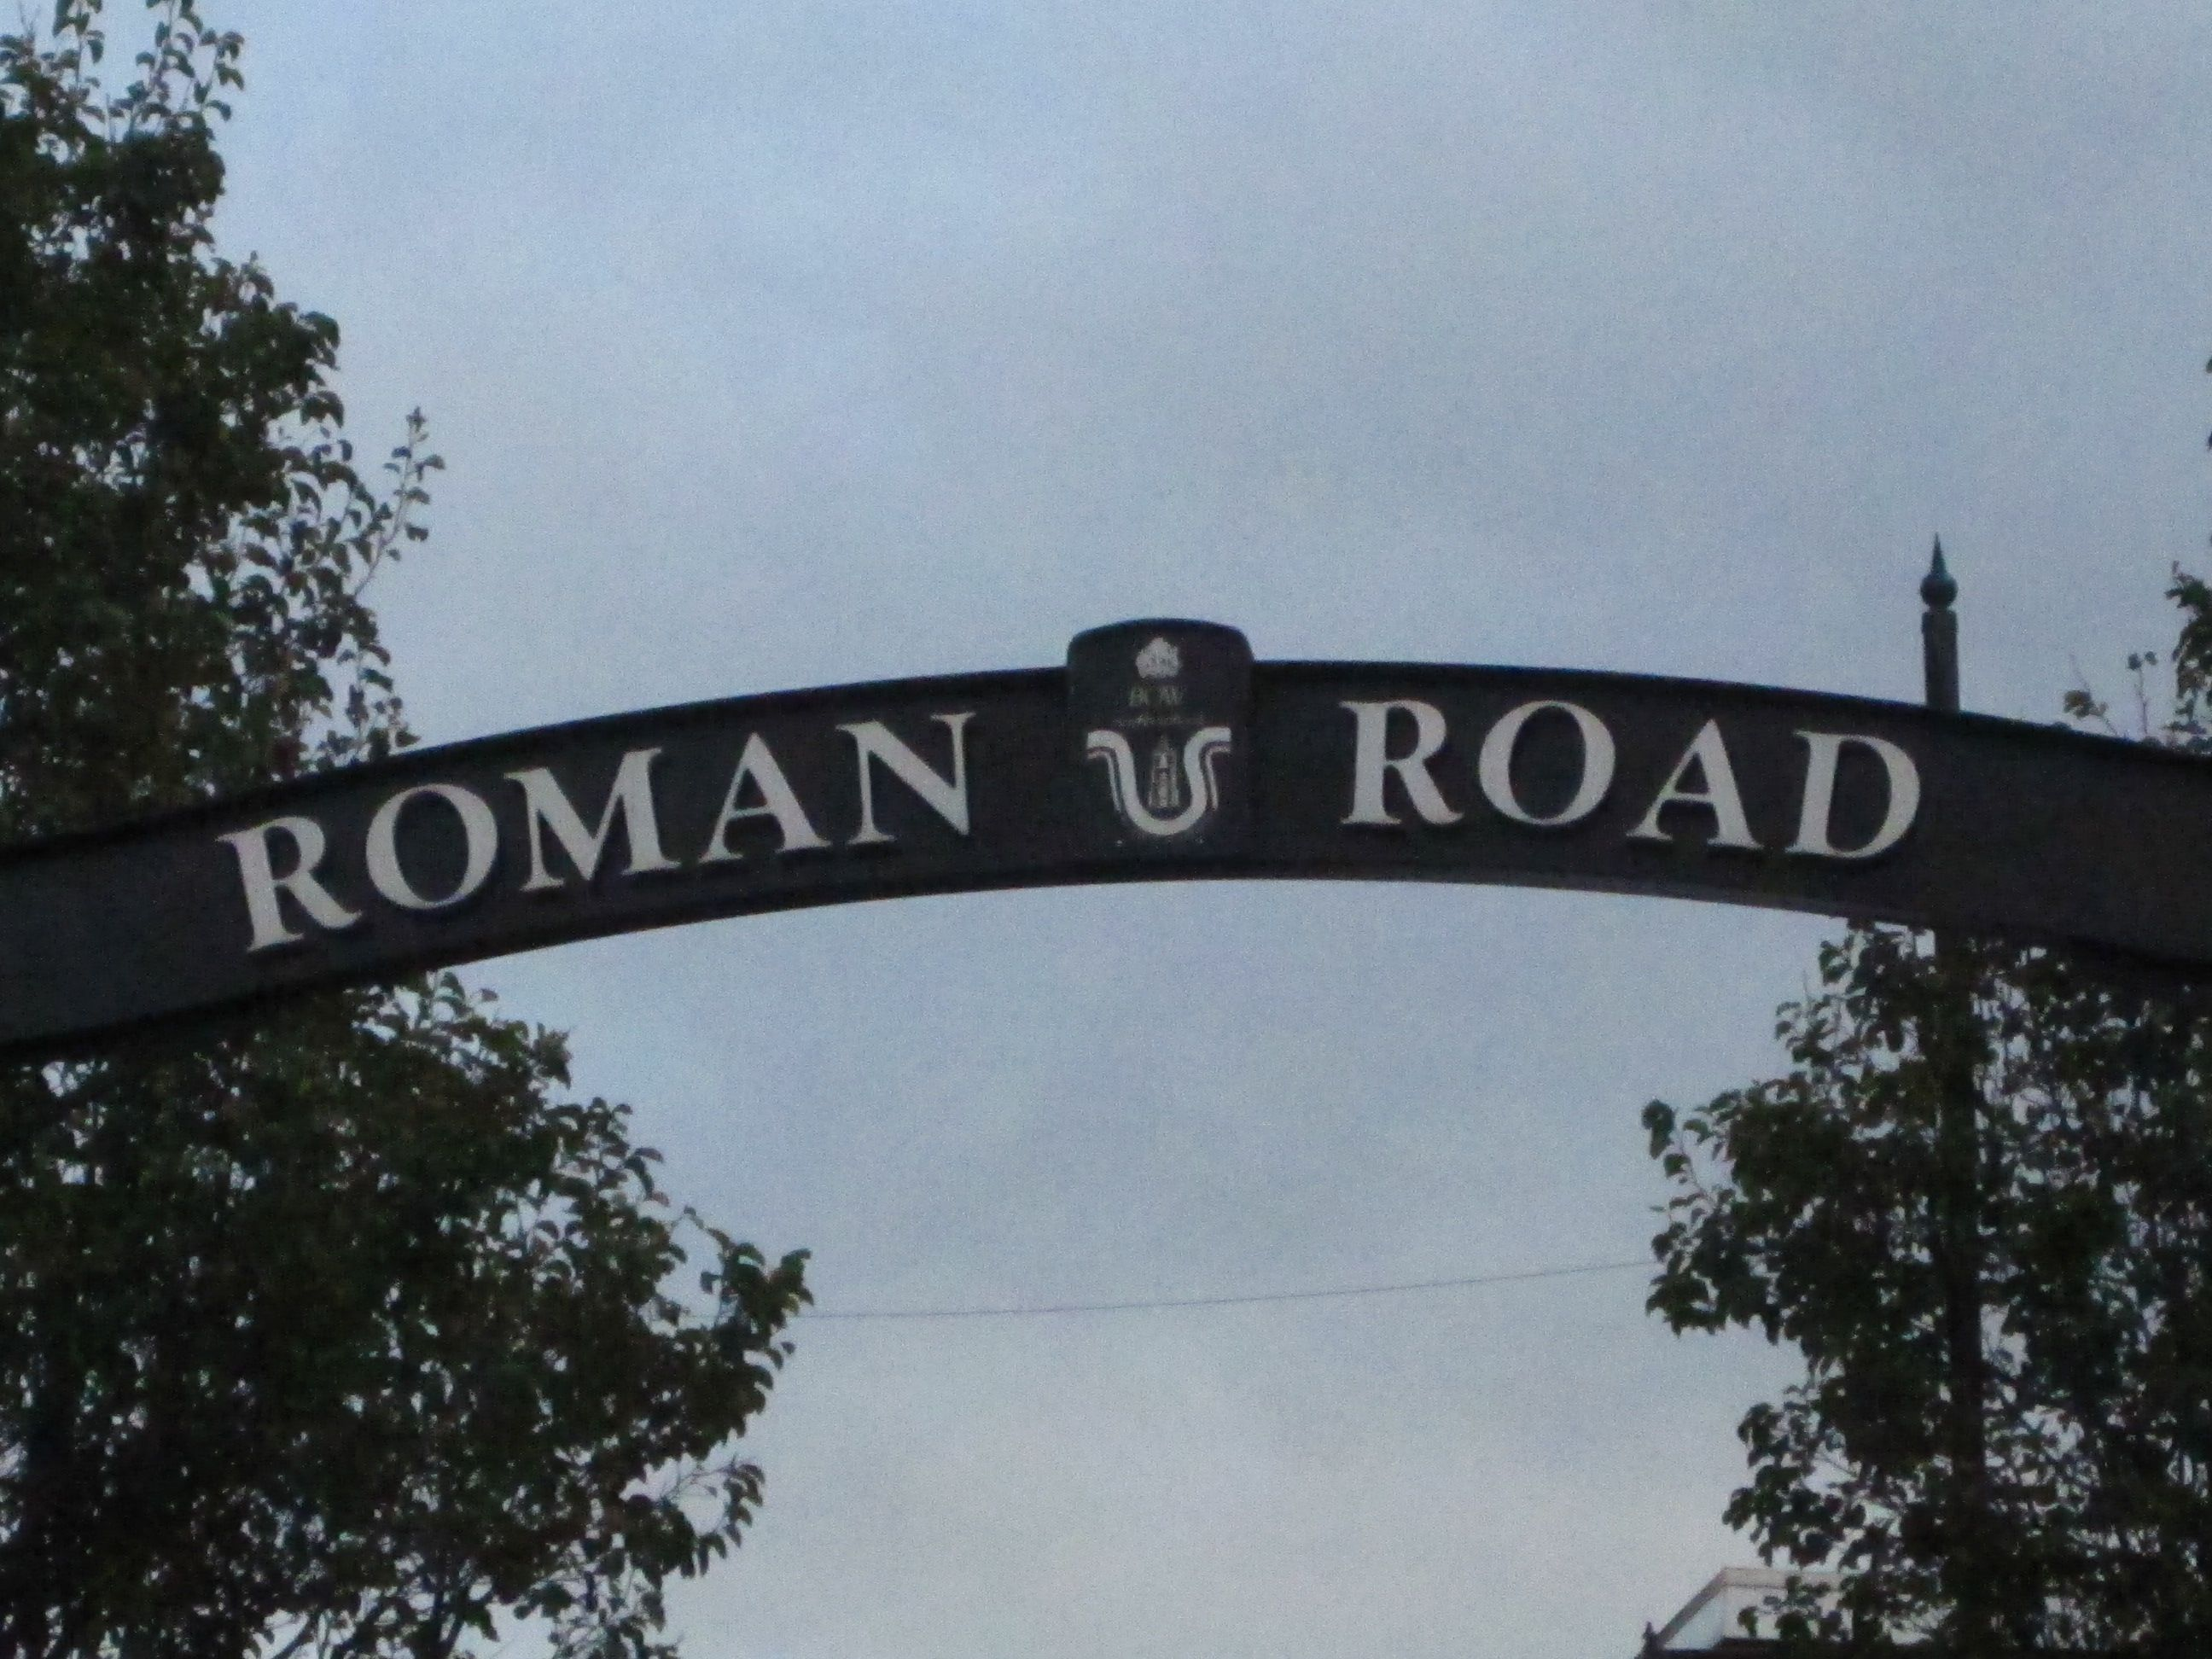 Roman Road Market in London, Greater London